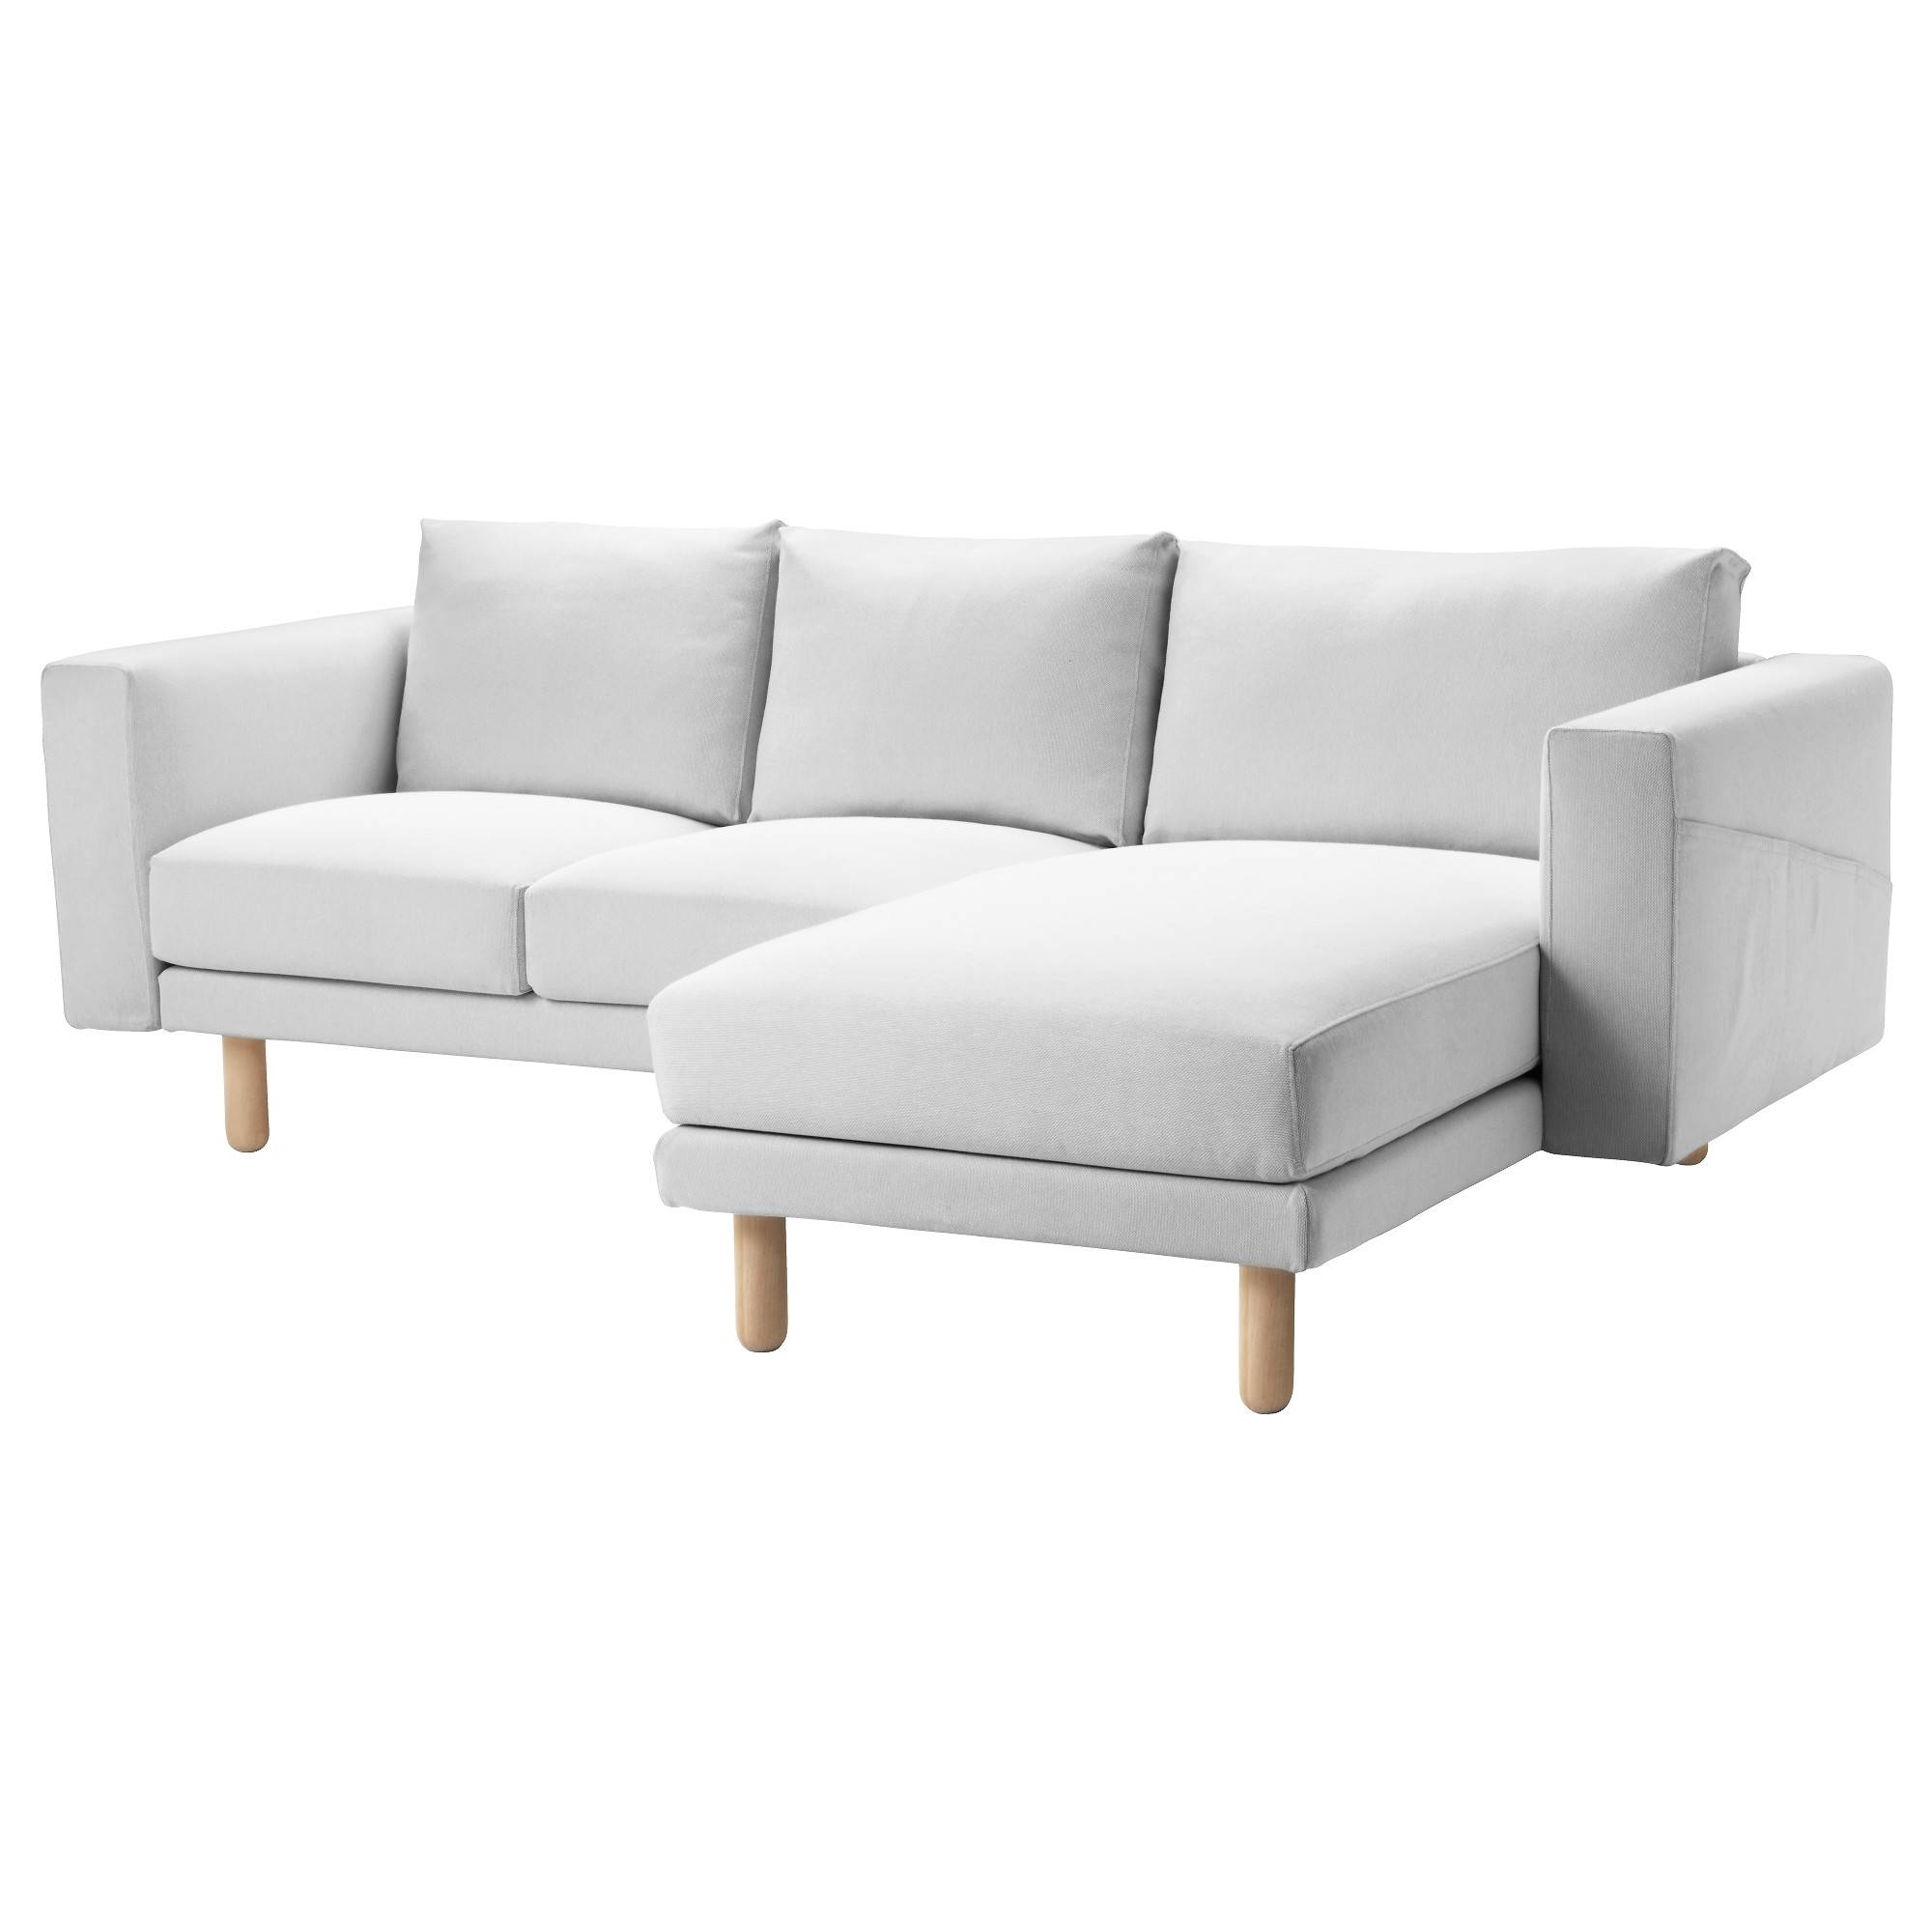 Norsborg Two-Seat Sofa With Chaise Longue Finnsta White/birch - Ikea in Ikea Chaise Lounge Sofa (Image 26 of 30)